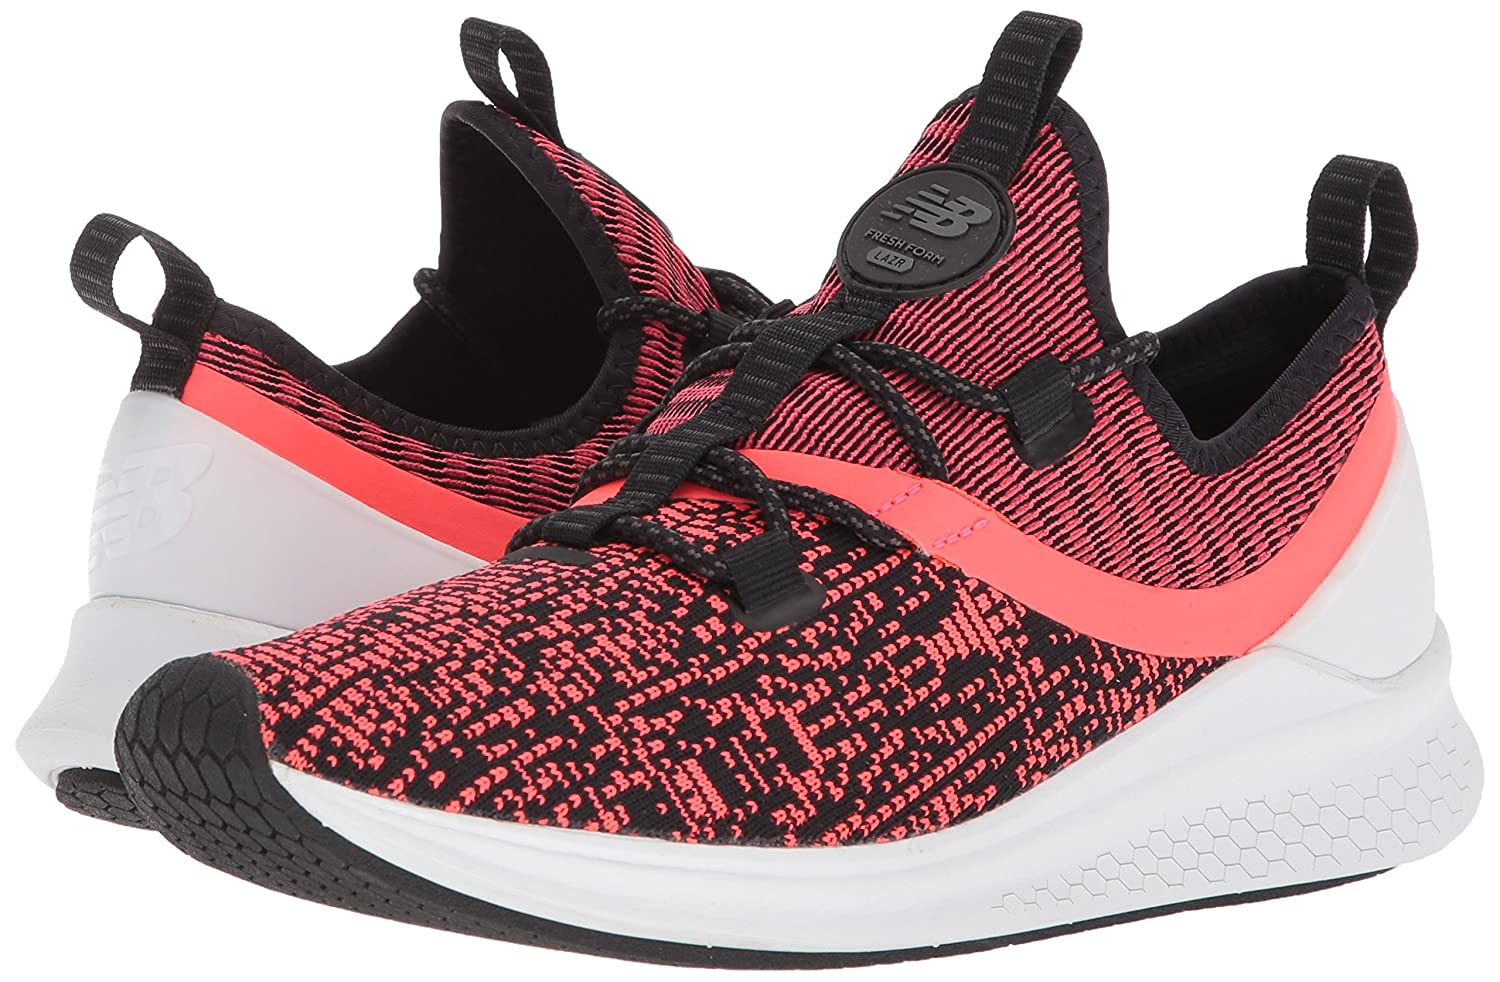 New Balance Women's Fresh Foam Lazr V1 Sport Running Shoe B06XRV2VVL 9 W US|Vivid Coral/Black/White Munsell